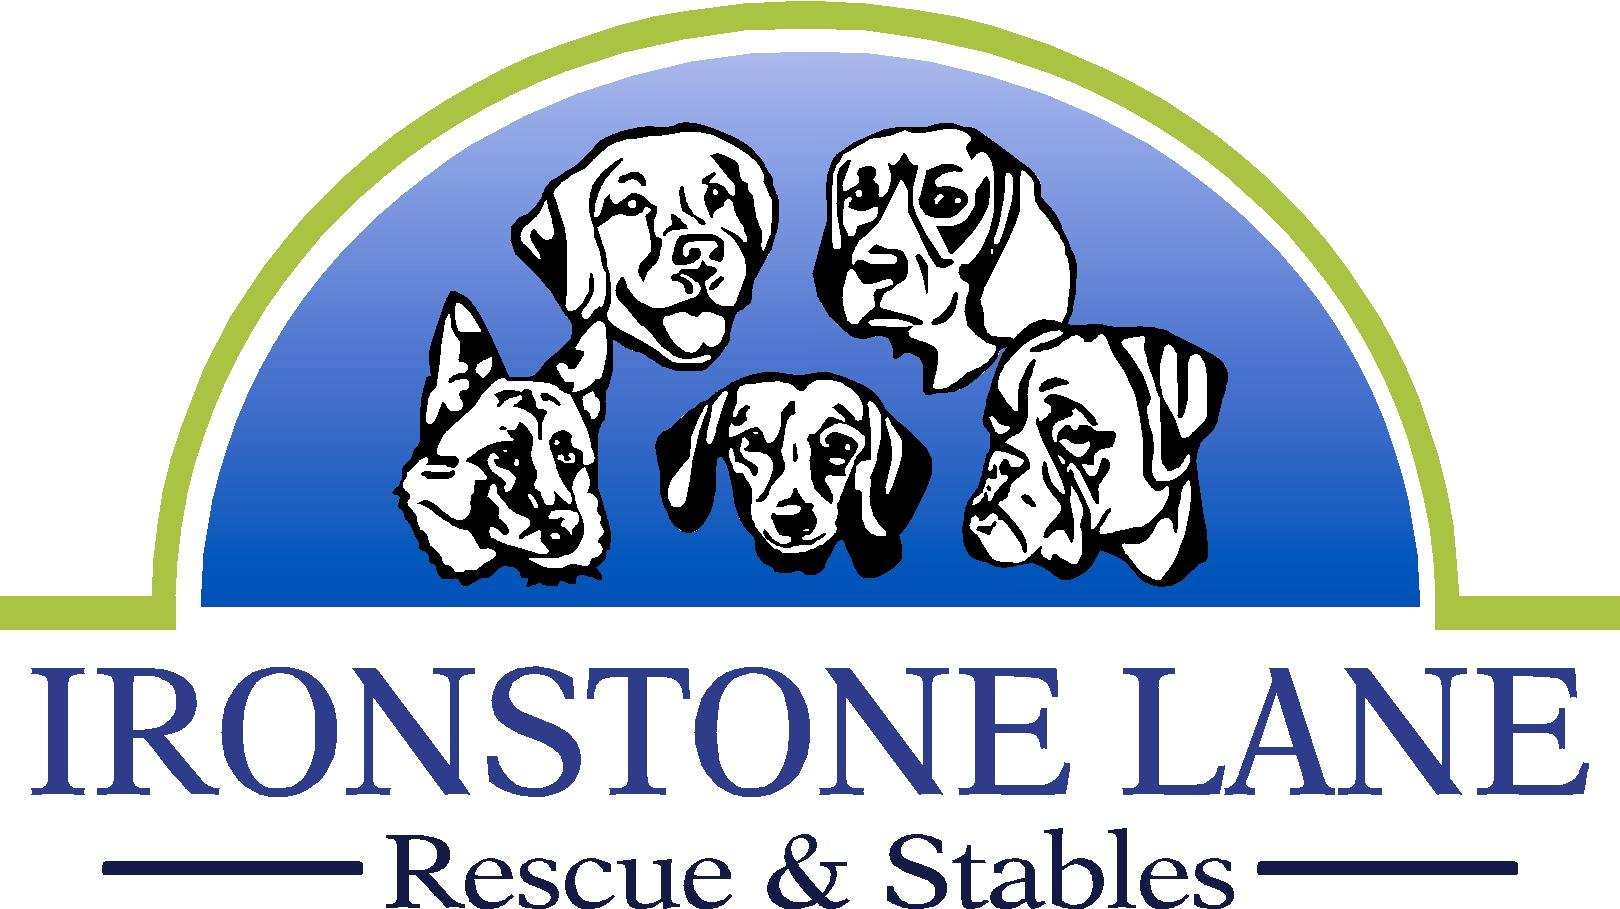 Ironstone Lane Rescue & Stables